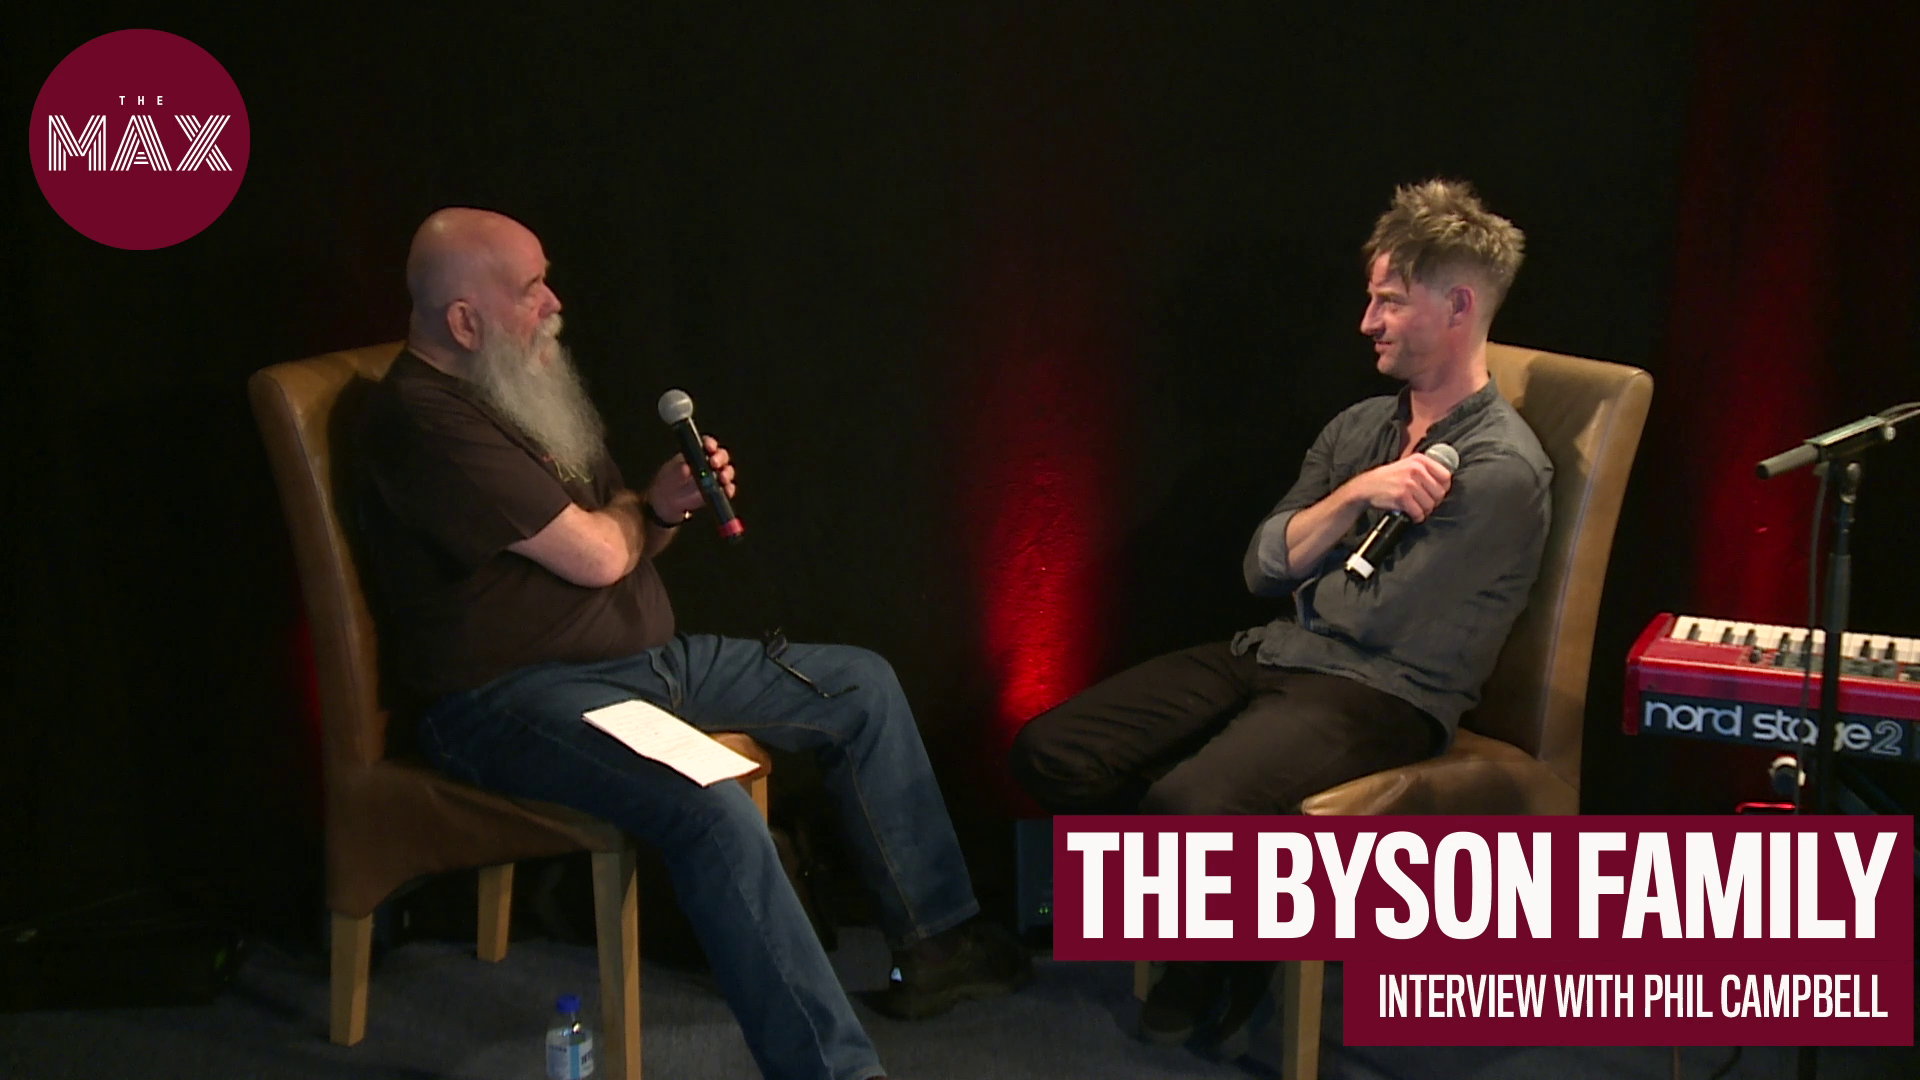 Live at The Max: Tom Russell interviews Phil Campbell - The Byson Family